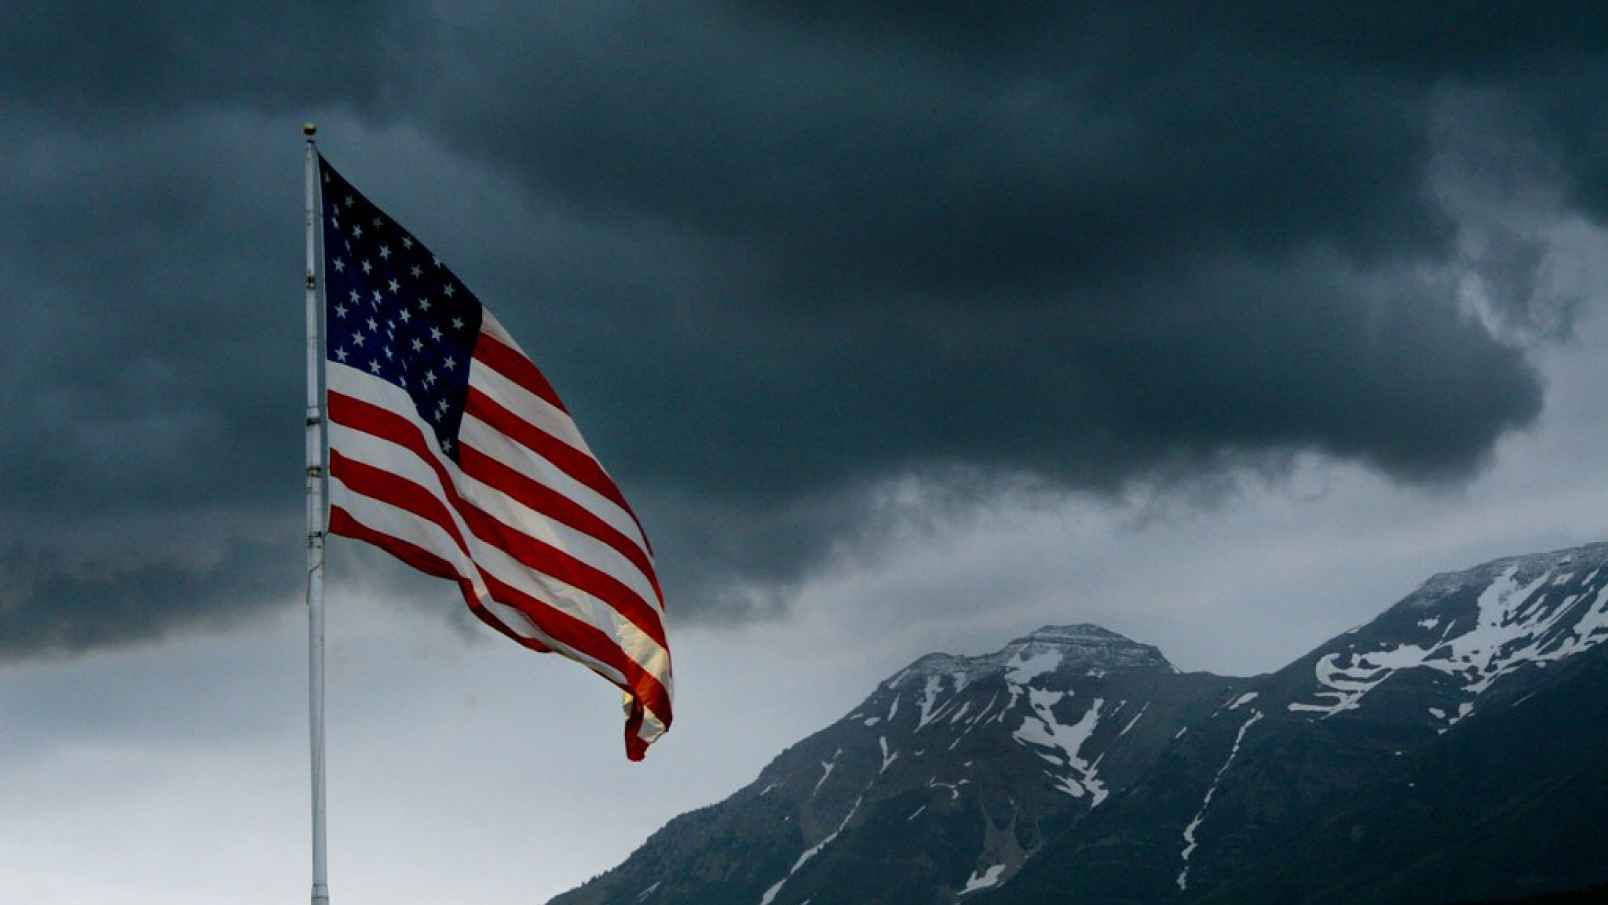 Why Flag Day 'Disturbs' Obama and the Dems